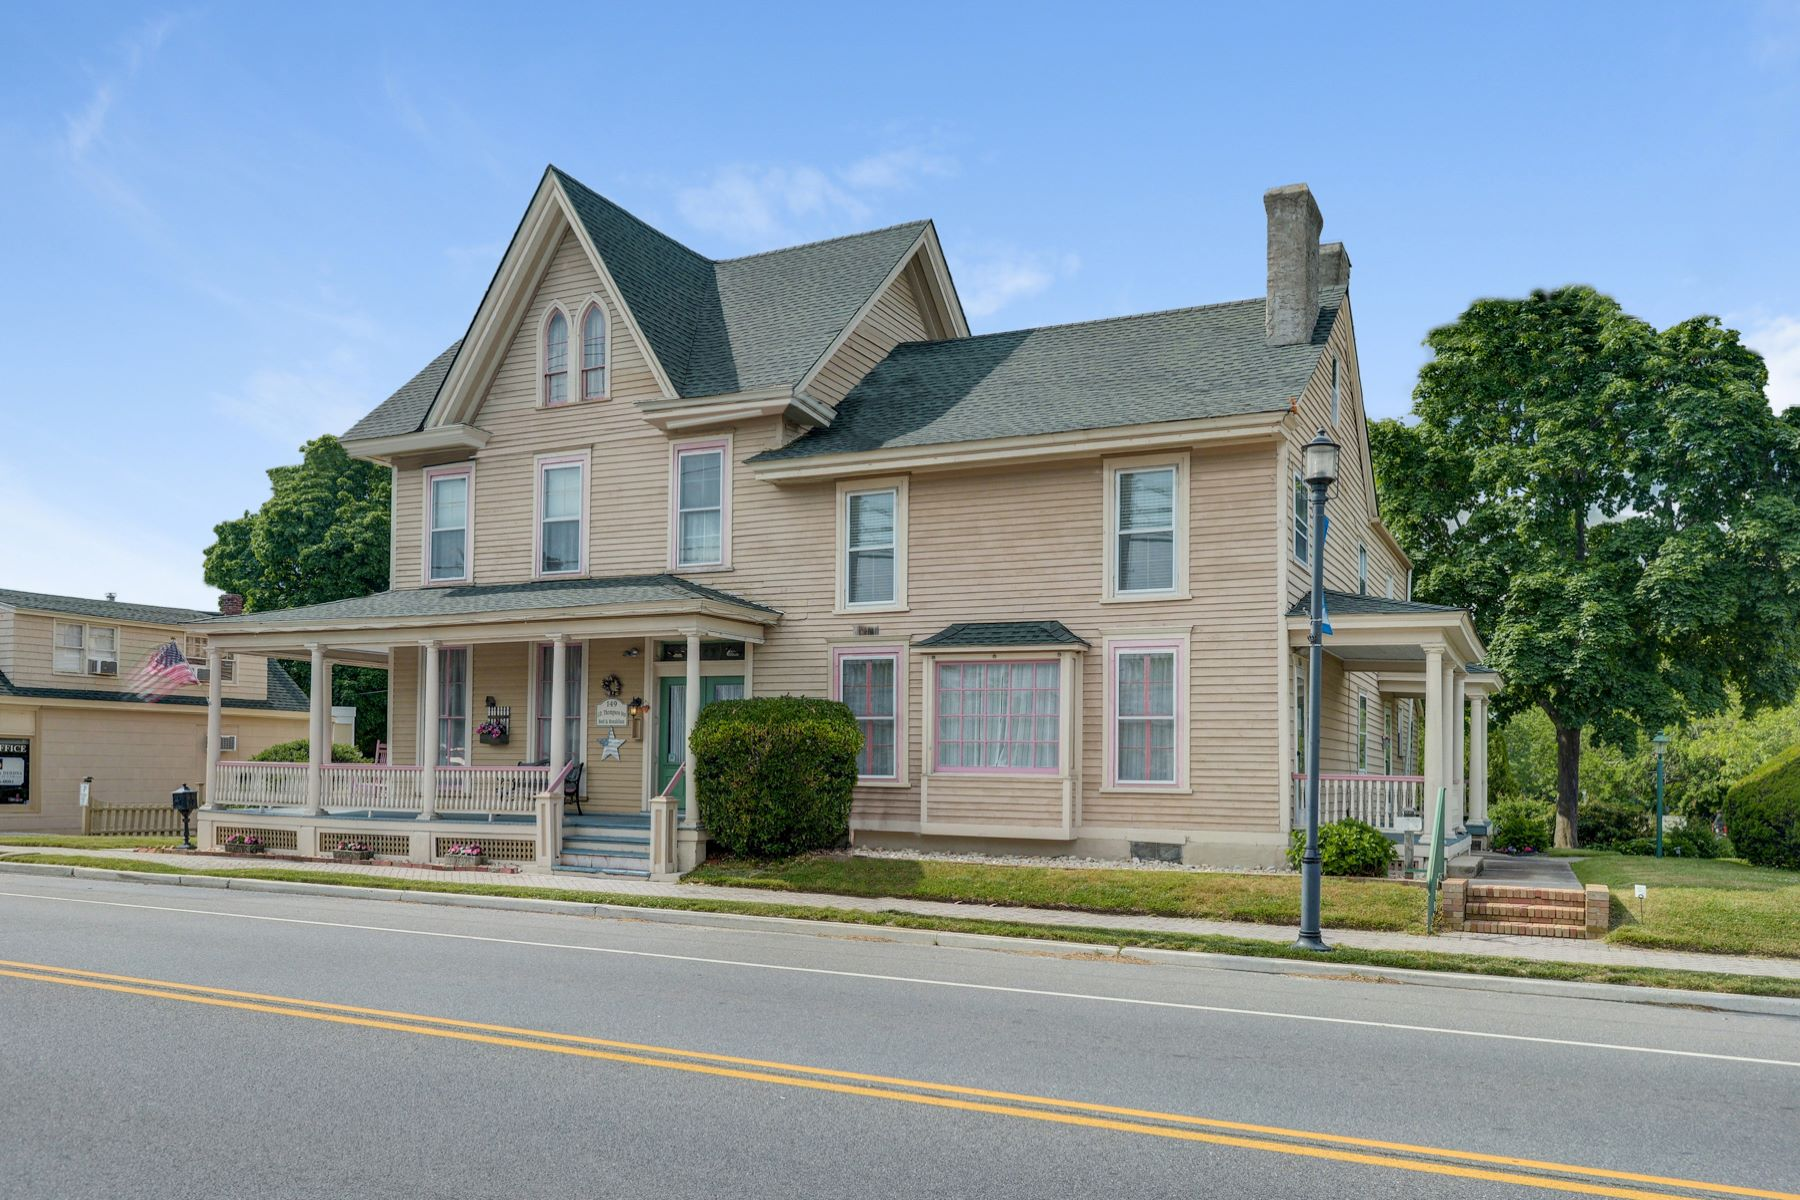 Single Family Homes のために 売買 アット ELEGANCE, BEAUTY & PROVENANCE IS SURE TO WELCOME YOU HOME. 147-151 E Main Street, Tuckerton, ニュージャージー 08087 アメリカ